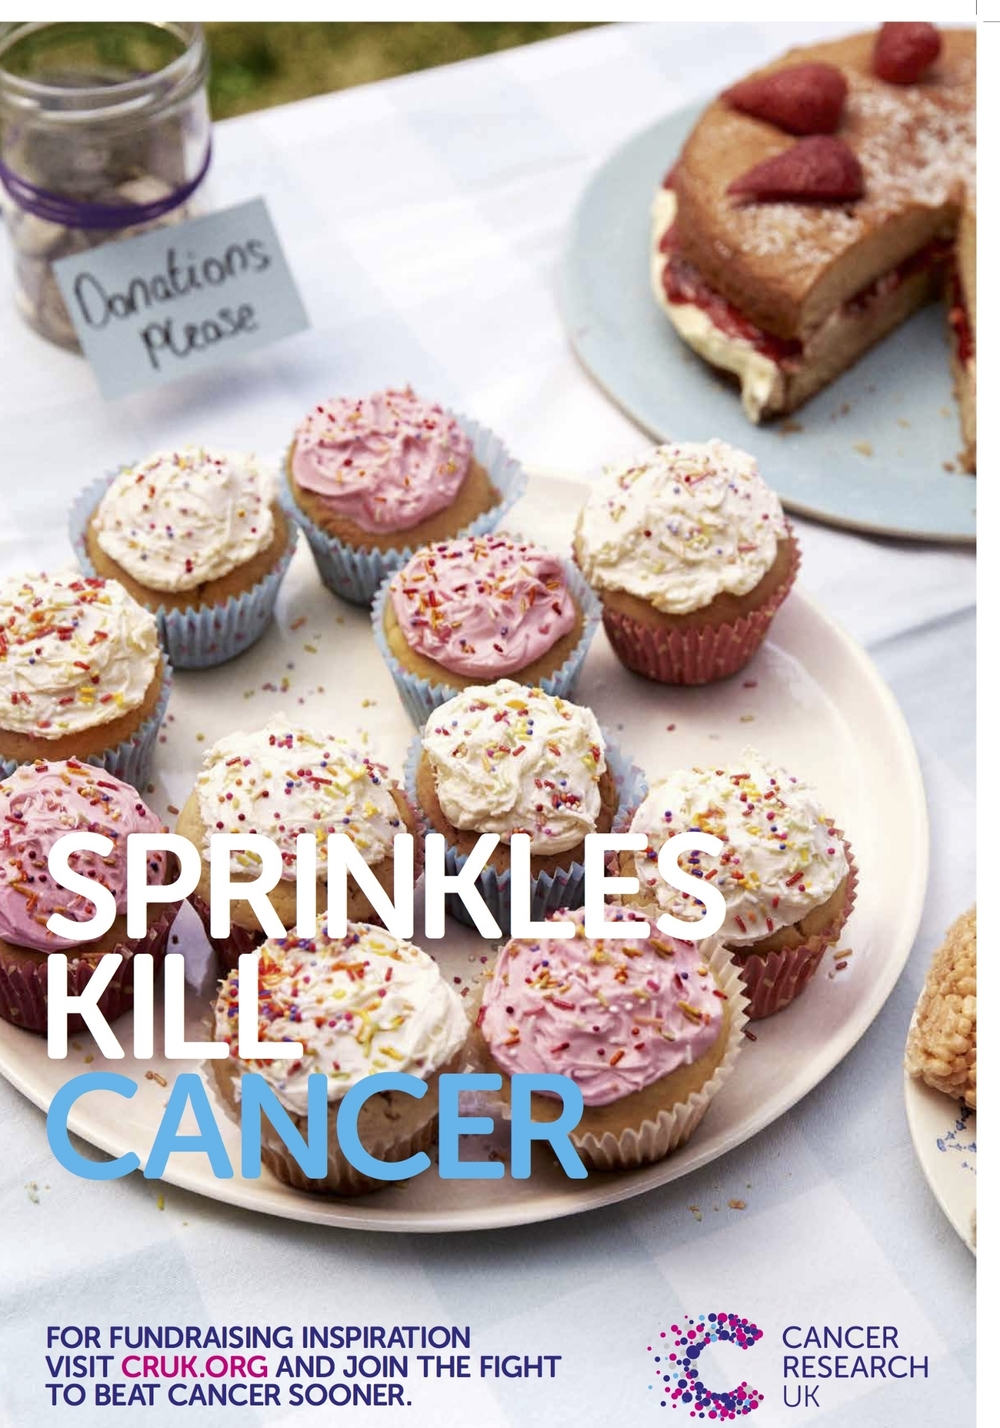 Cancer Research UK Sprinkles